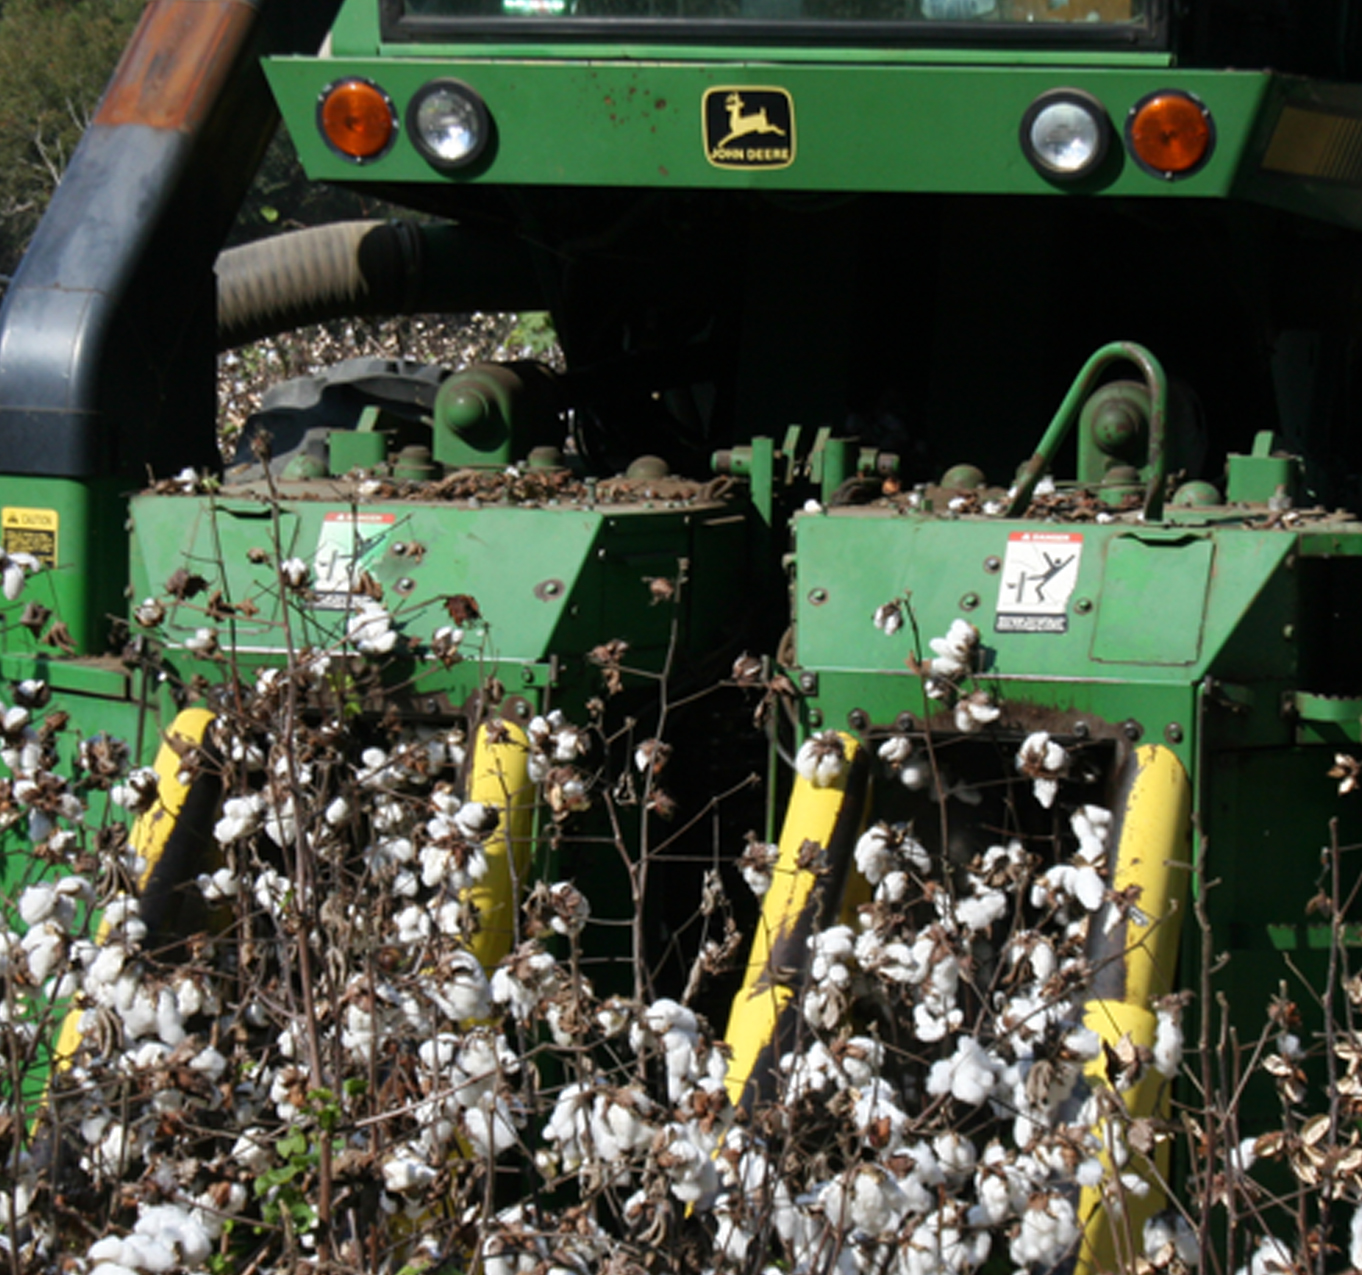 This picture shows cotton being picked at the Gibbs Farm in Tifton on Wednesday, Oct. 30, 2013.